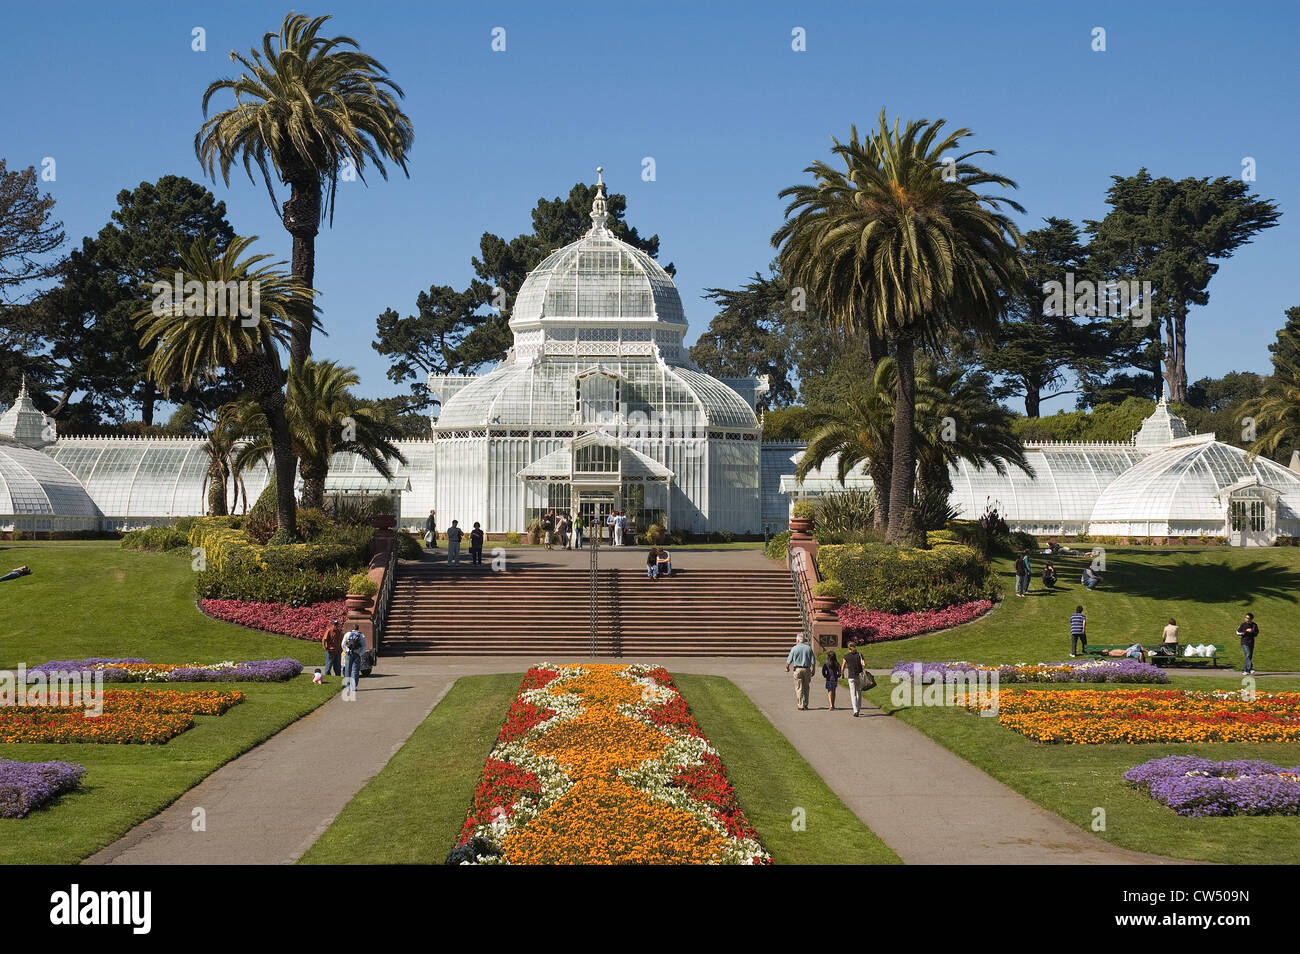 Elk253-X011 California, San Francisco, Golden Gate Park, Conservatory of Flowers - Stock Image